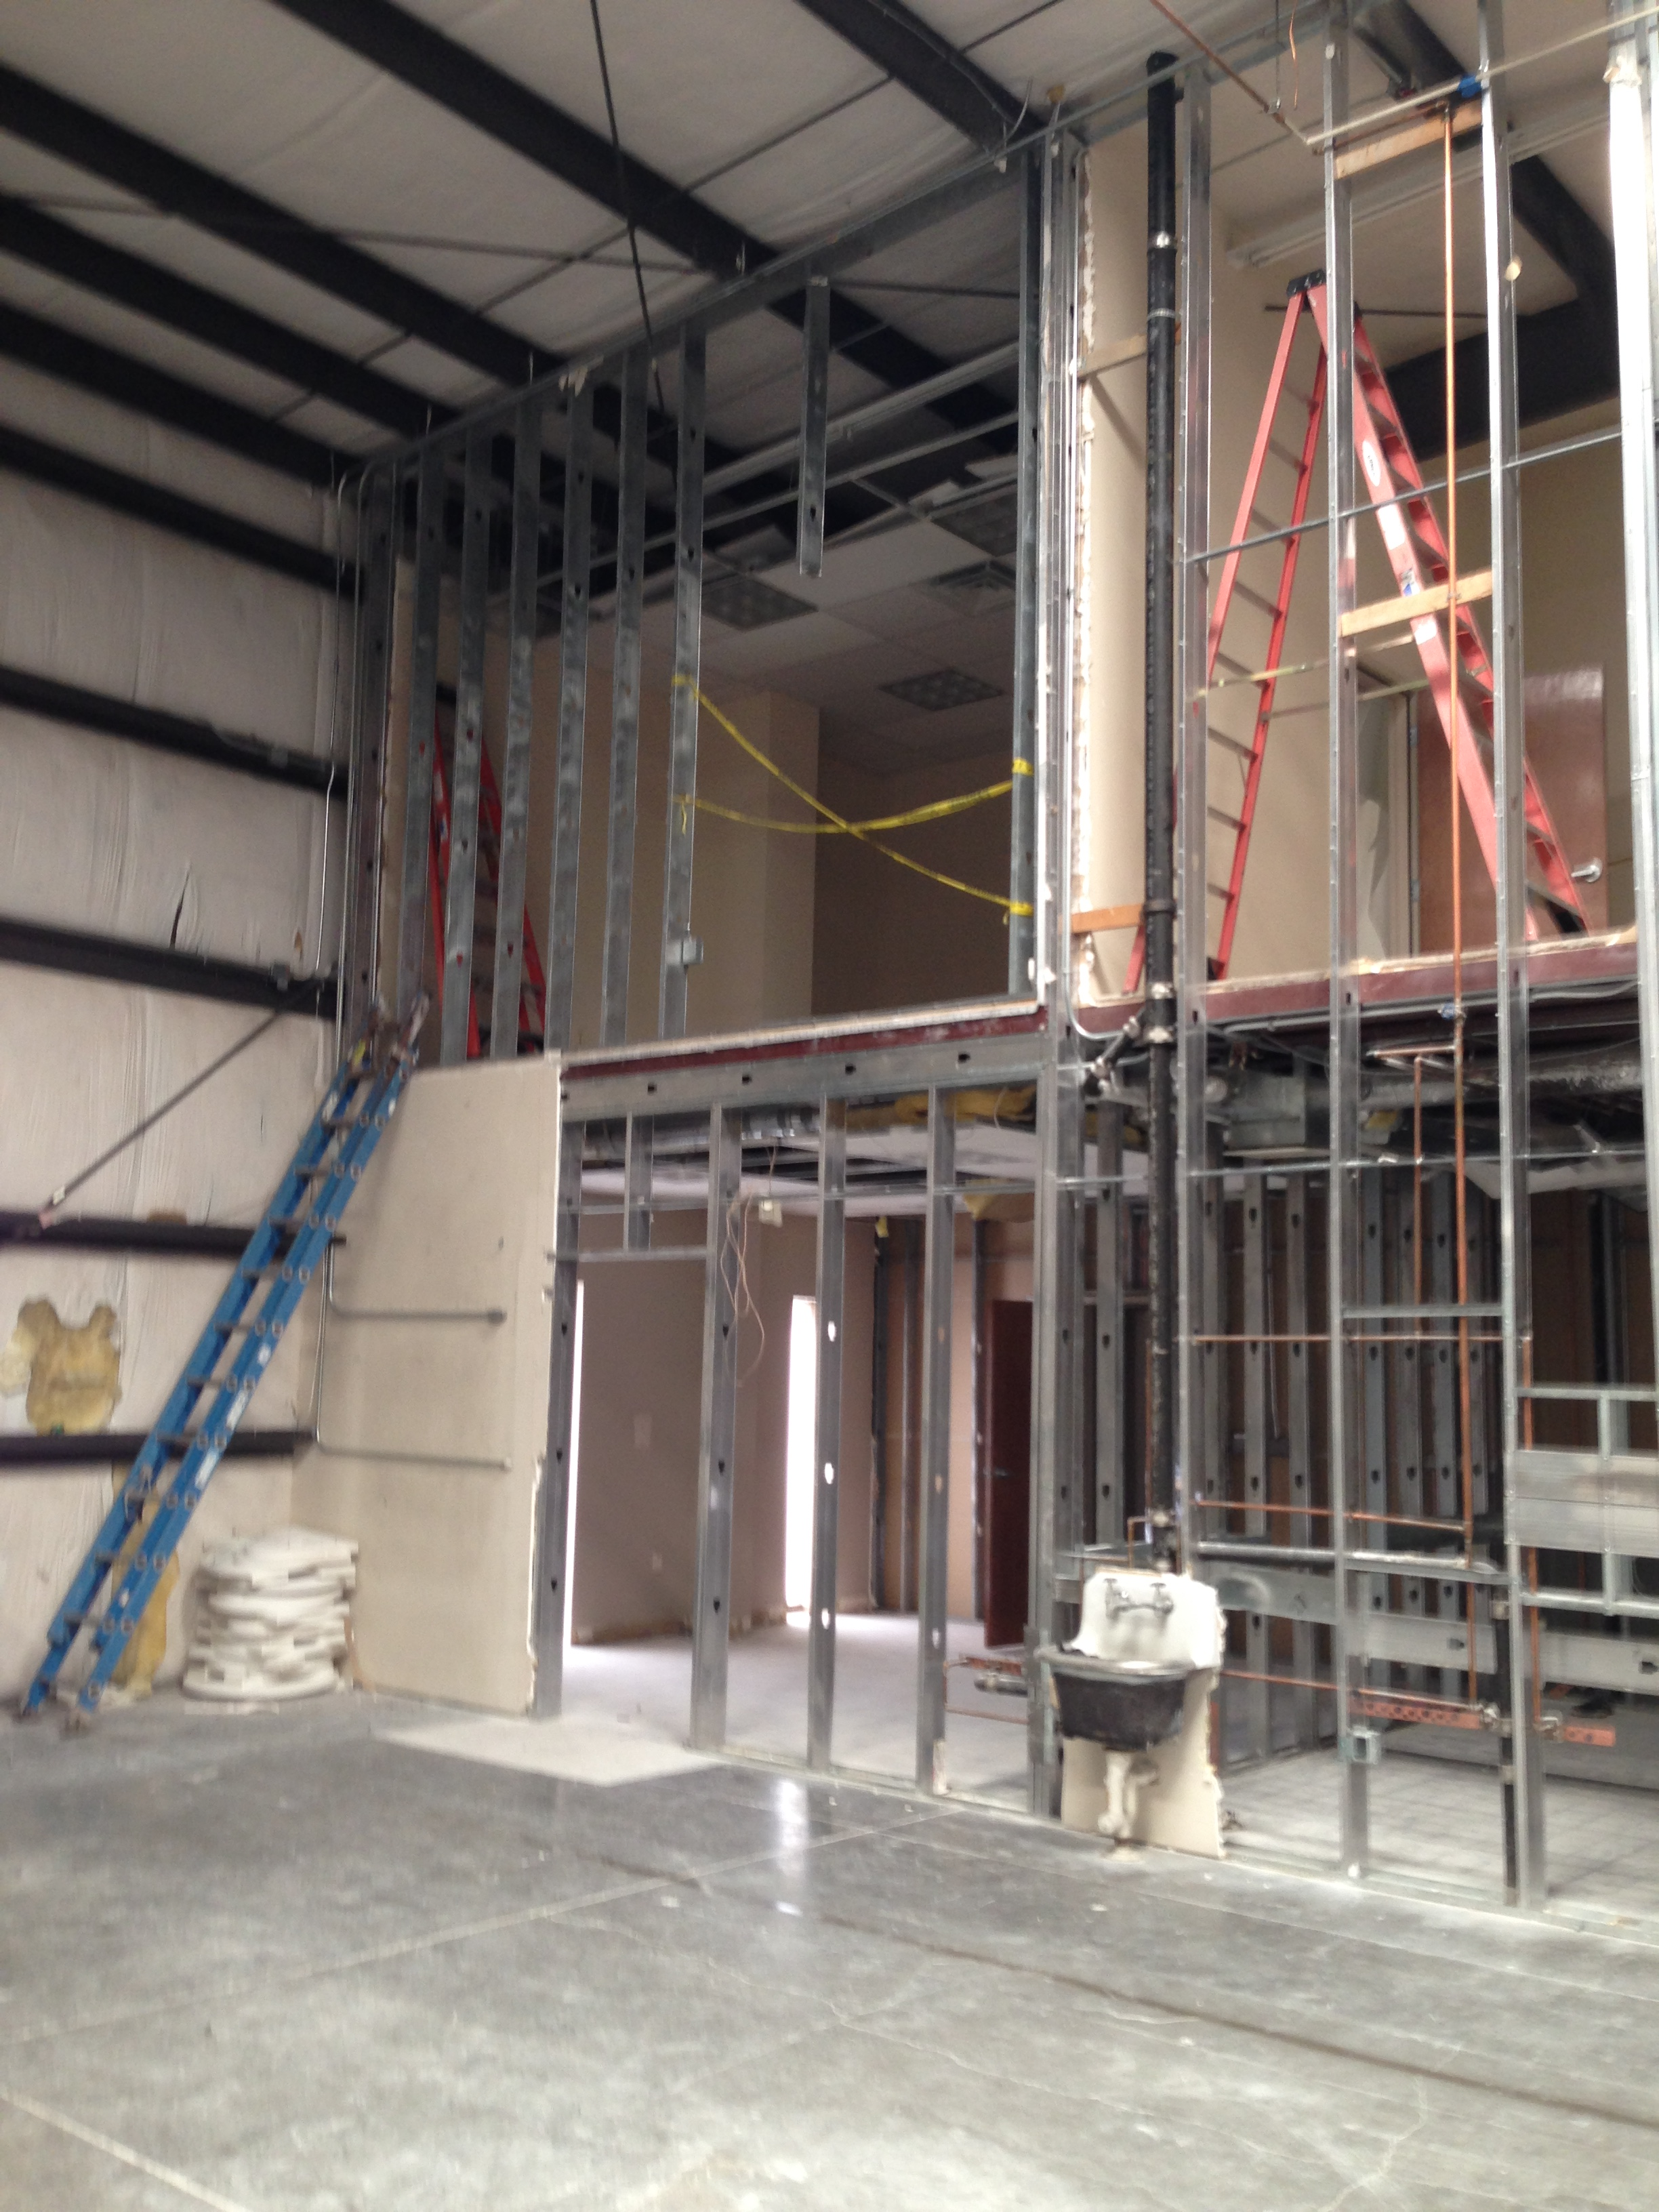 Demolition to enlarge restrooms and upper offices